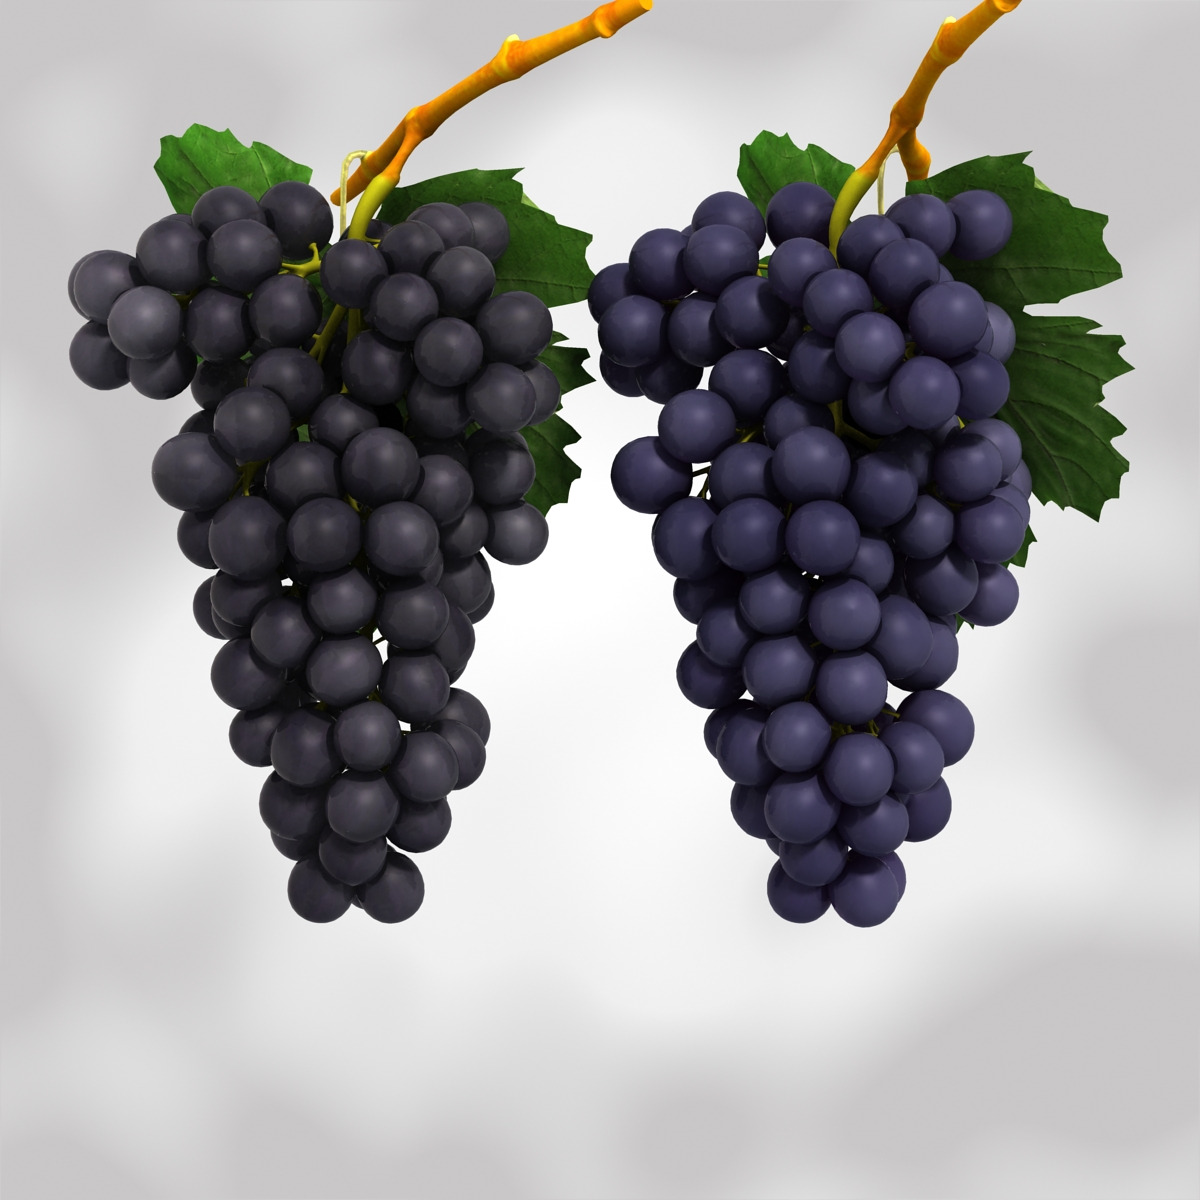 grapes black and blue 3d model 3ds max fbx c4d obj 204266